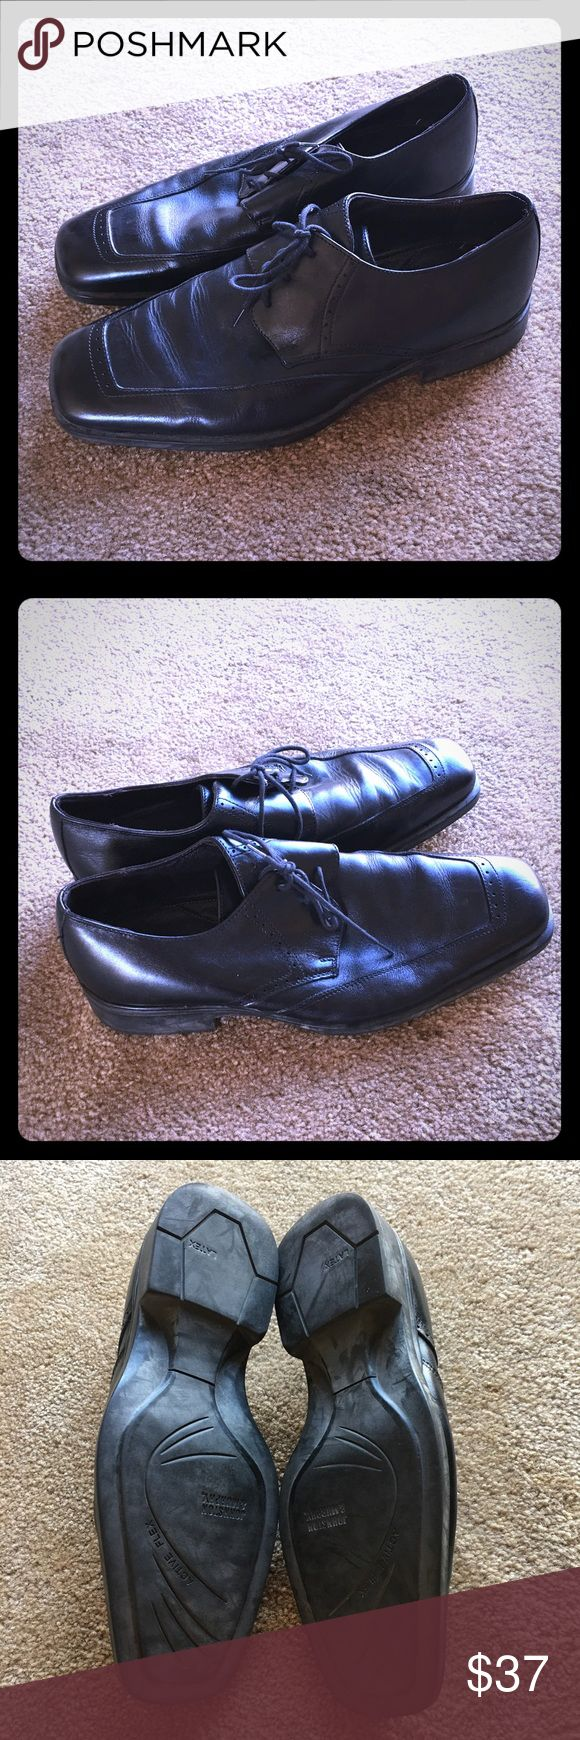 Johnston and Murphy leather shoes Sz 9.5 Mens Johnston and Murphy leather dress shoes. Excellent condition with very little wear. Johnston & Murphy Shoes Loafers & Slip-Ons